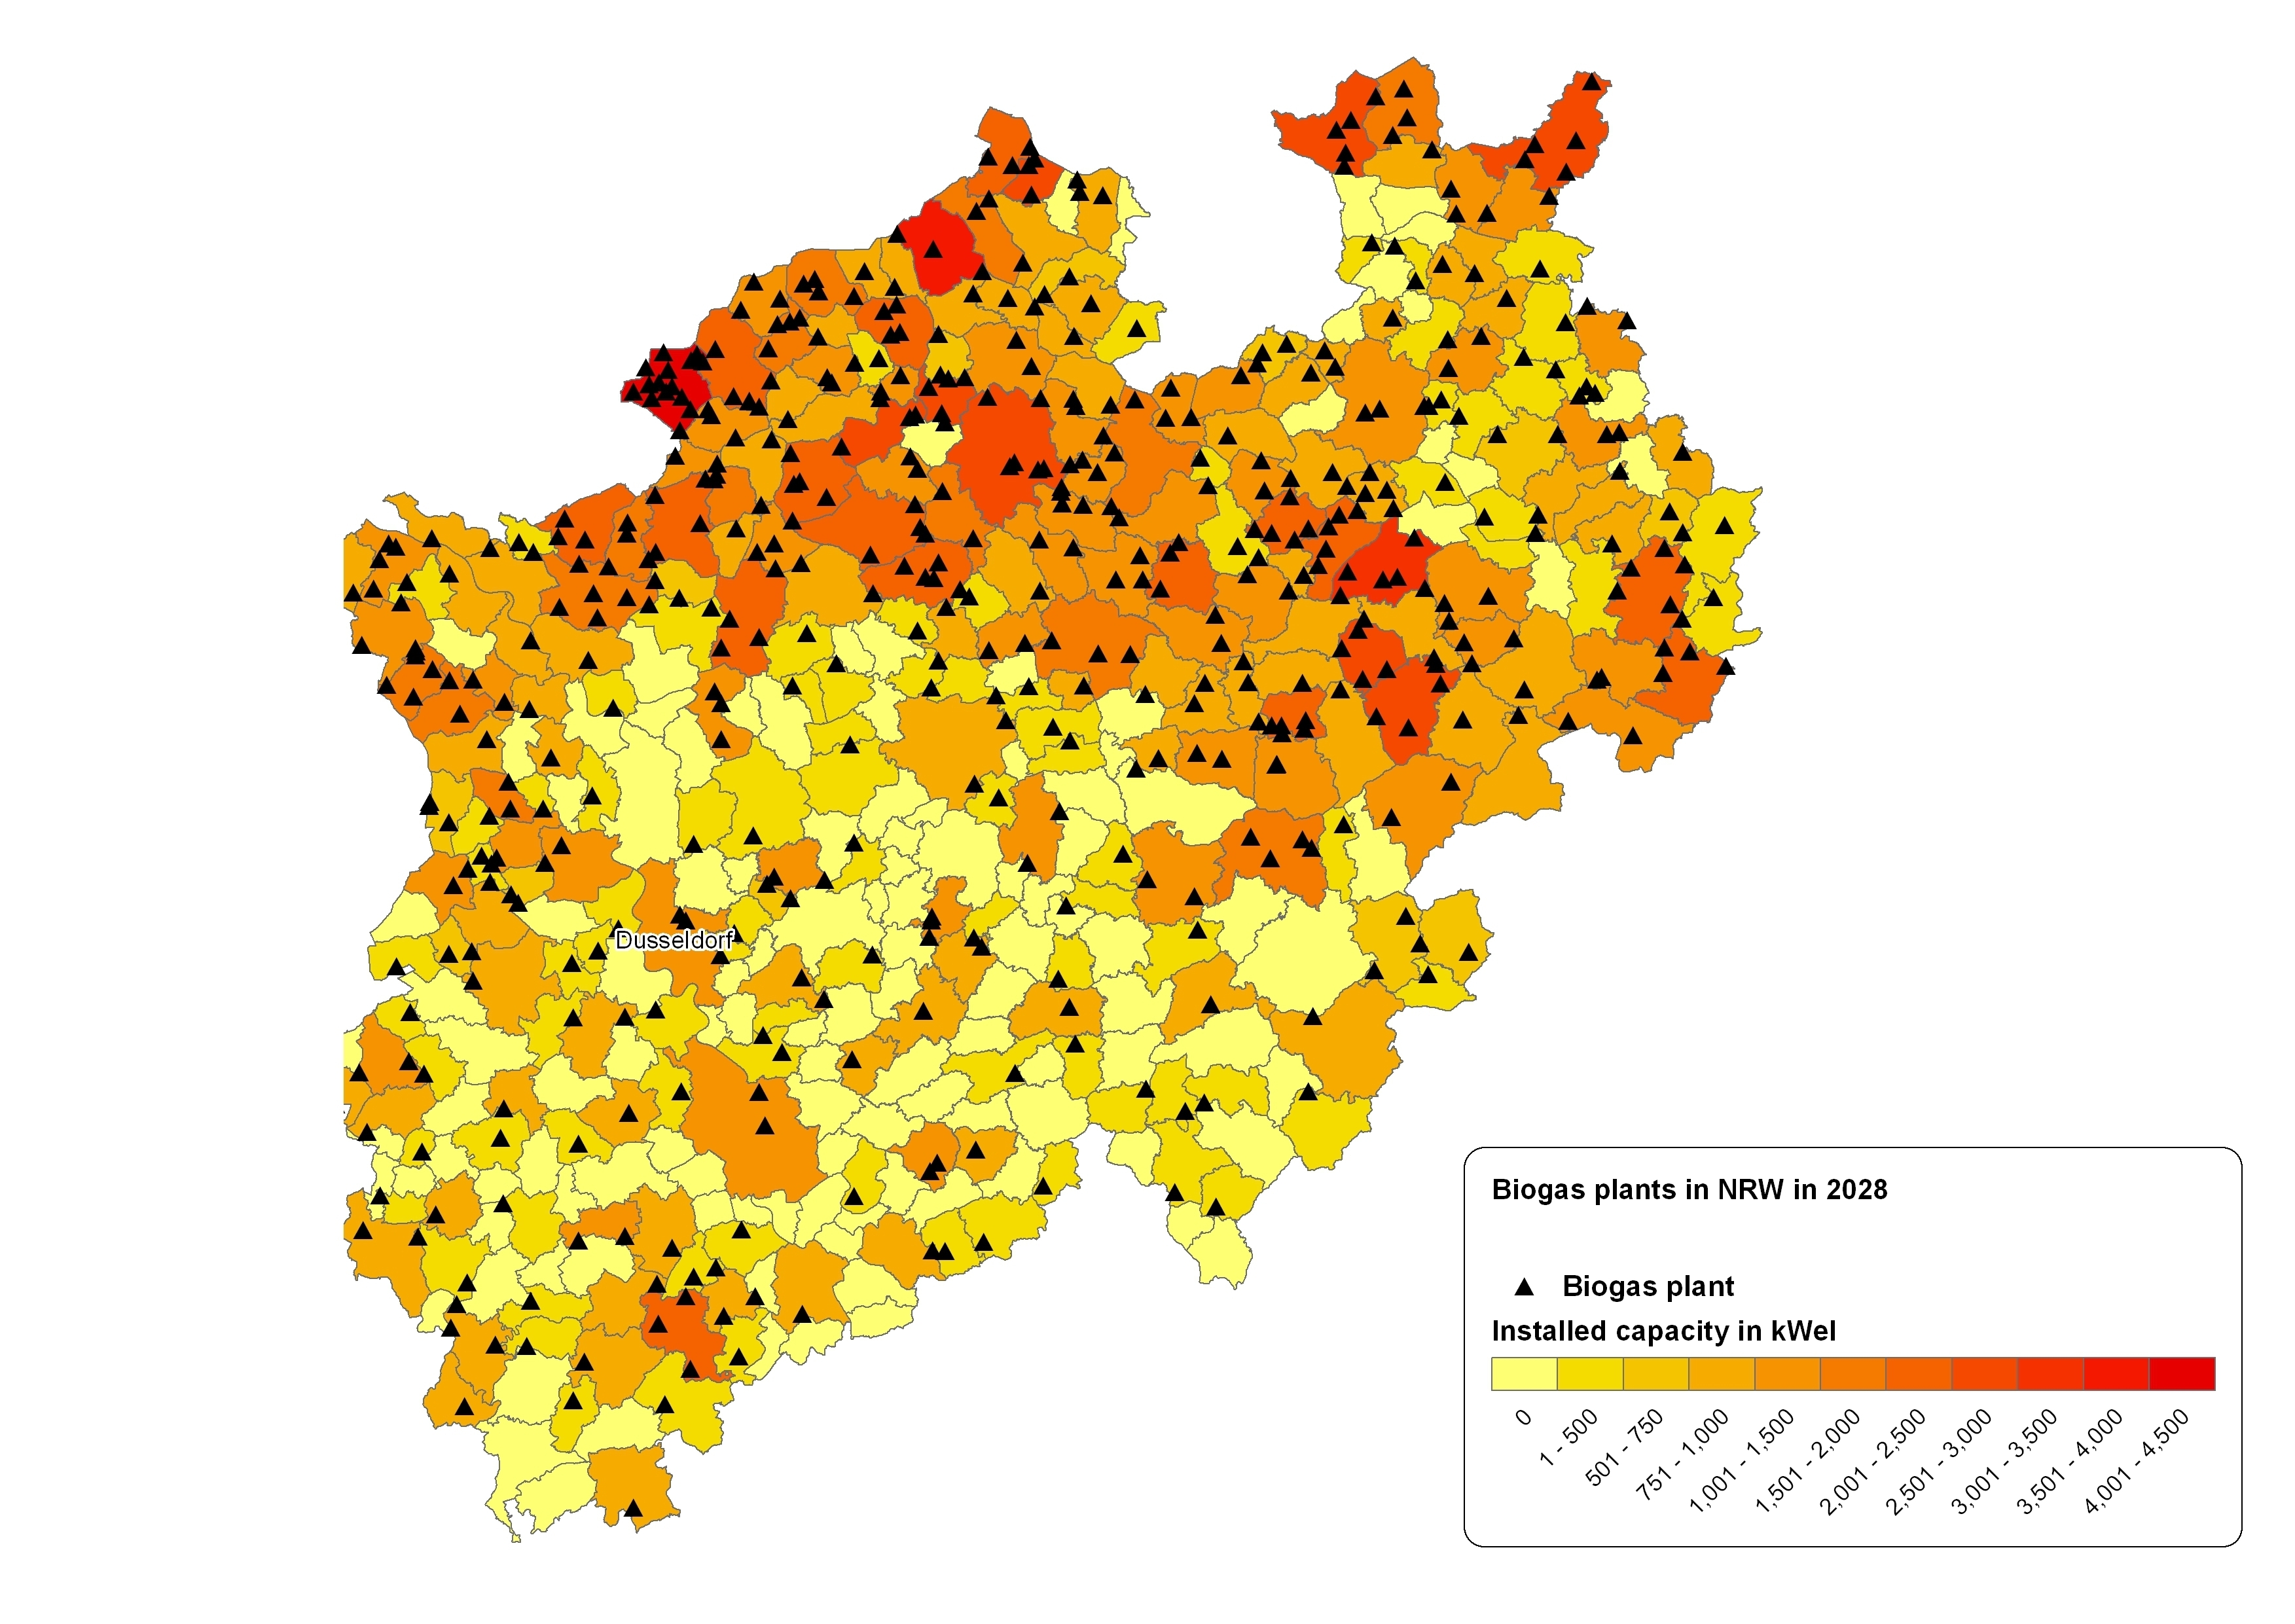 Modeling The Spatial Diffusion Of Agricultural Biogas Plants Rwth Plant Diagram Source Biogastechnologyblogspotcom Distribution Total In Nrw 2028